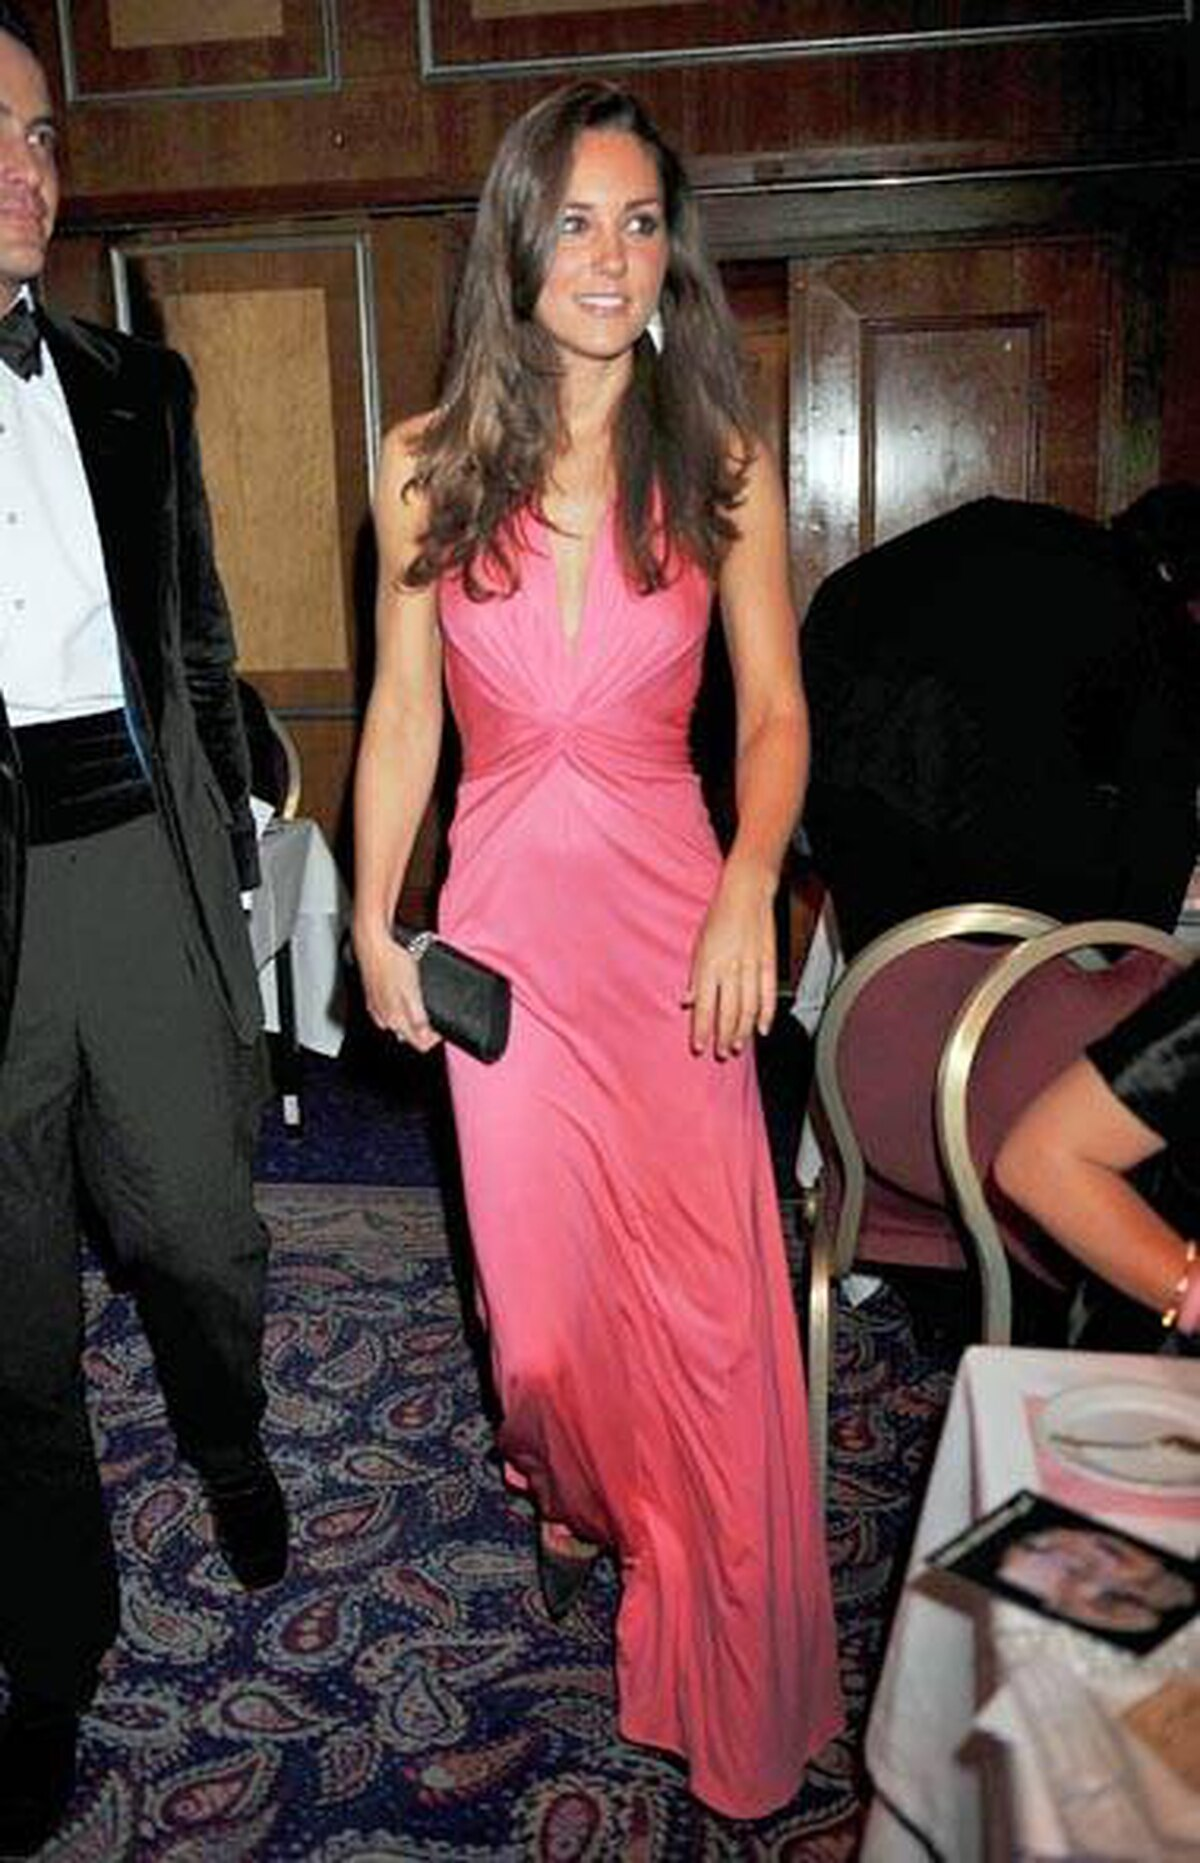 Her affinity for affordable finds at High Street shops such as Top Shop and Oasis suggests she's a princess of the people, but Ms. Middleton also scores top points for effortless eveningwear in a gown by London-based label Issa.